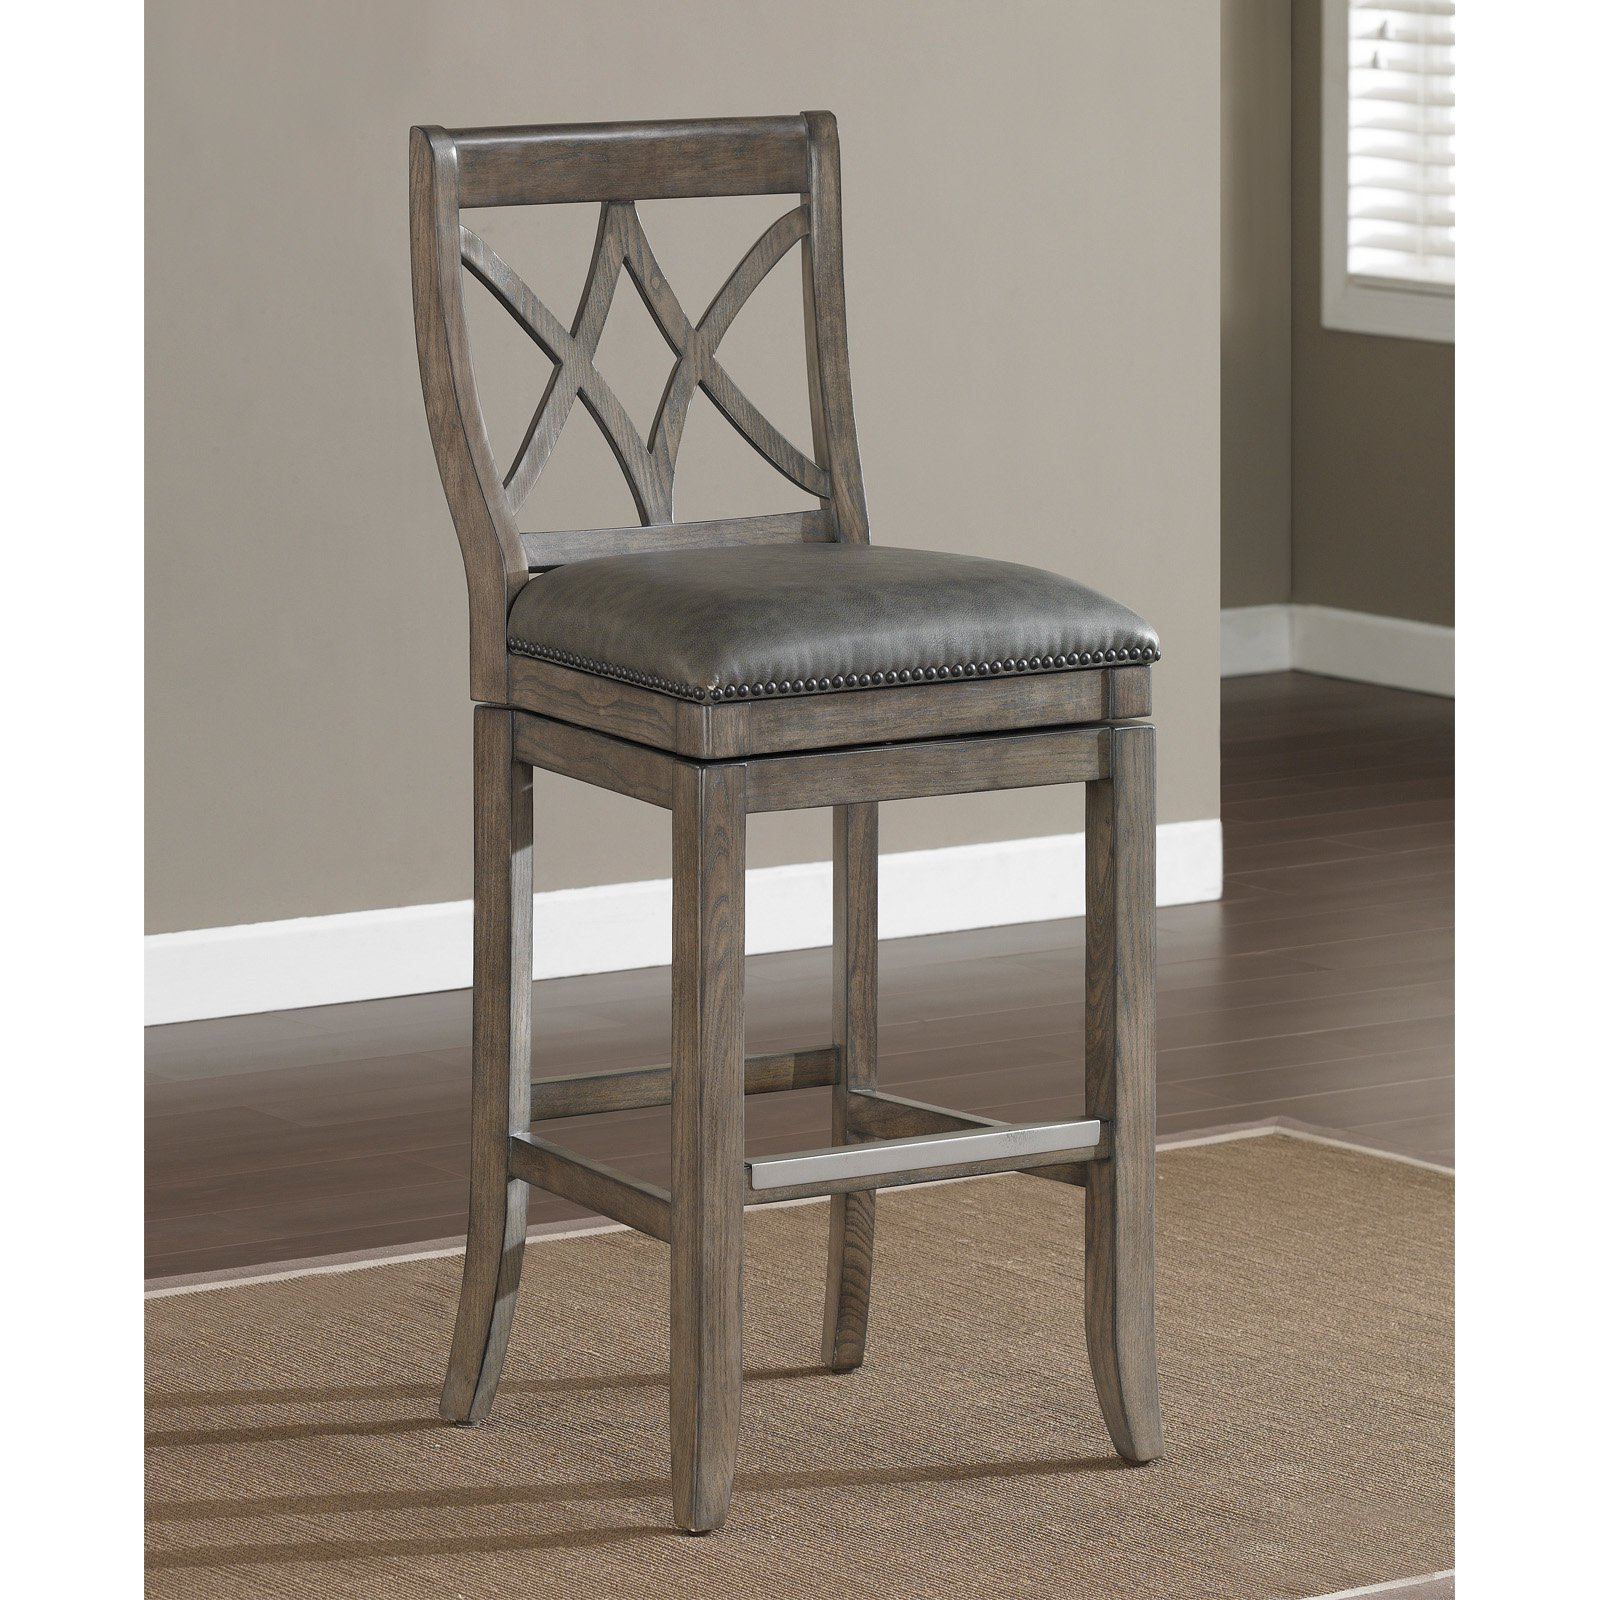 Awesome Grey Counter Height Bar Stools Part - 4: Walmart.com